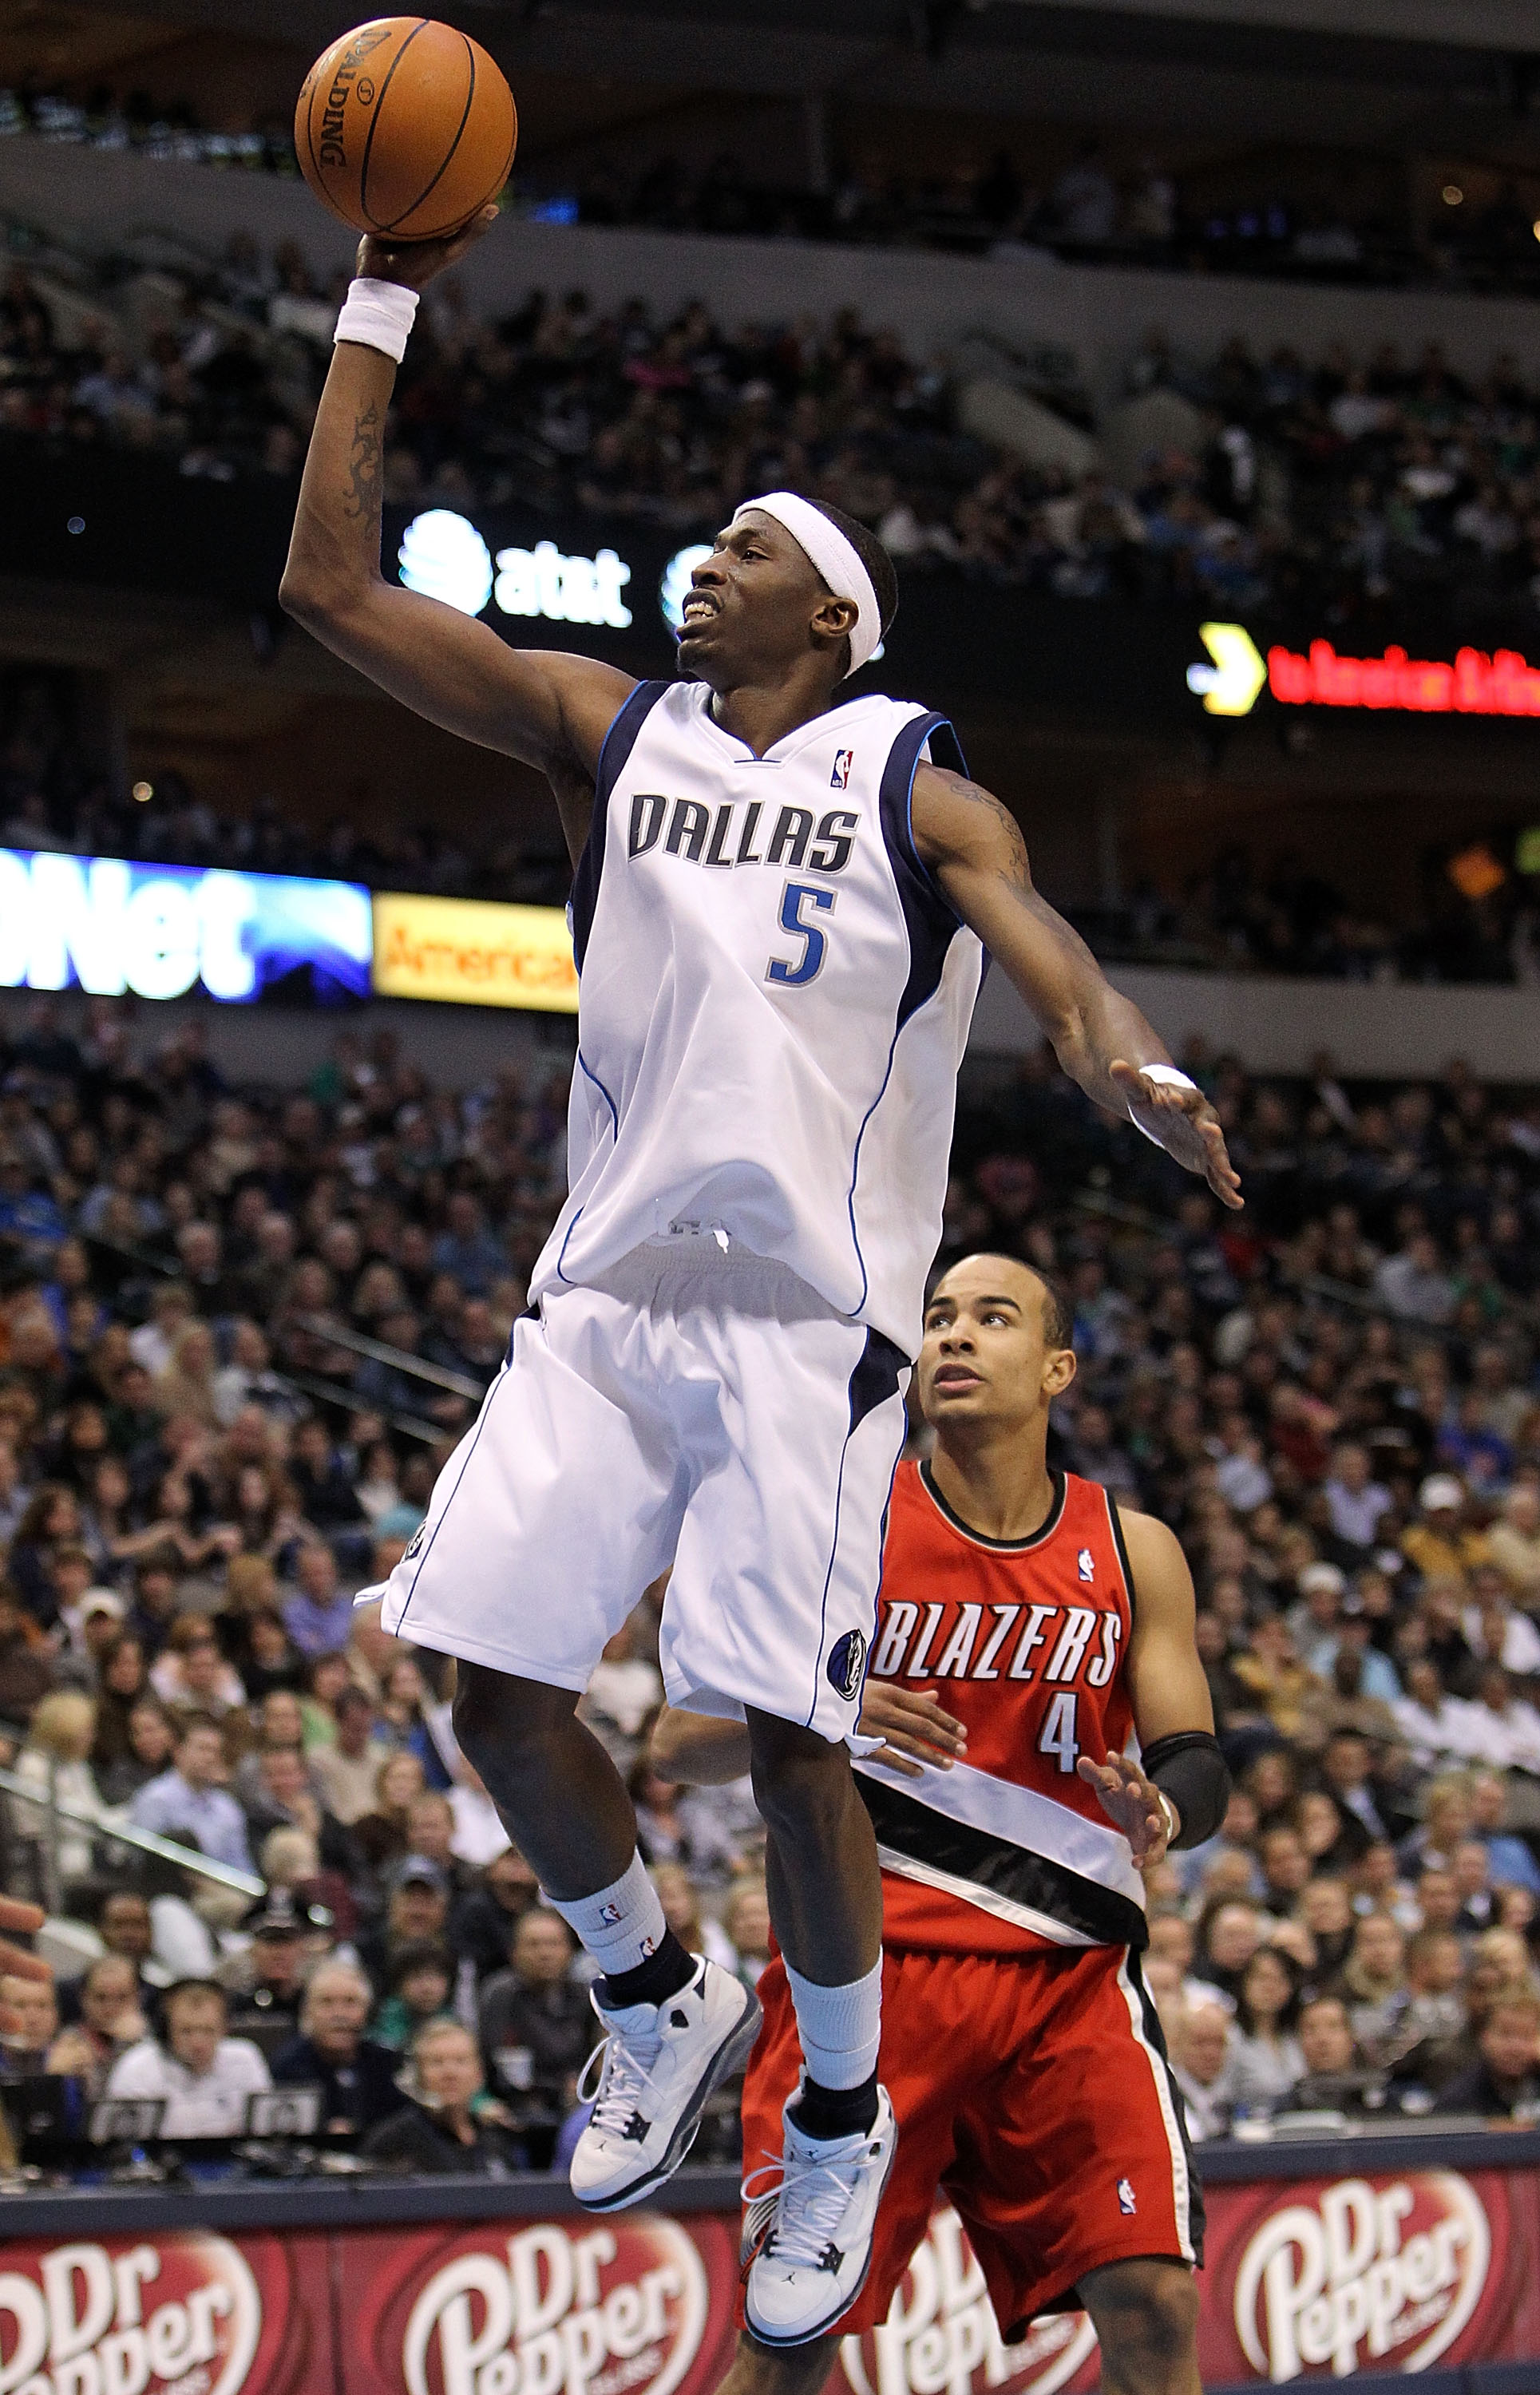 DALLAS - JANUARY 30:  Forward Josh Howard #5 of the Dallas Mavericks takes a shot against Jerryd Bayless #4 of the Portland Trail Blazers on January 30, 2010 at American Airlines Center in Dallas, Texas.  NOTE TO USER: User expressly acknowledges and agre